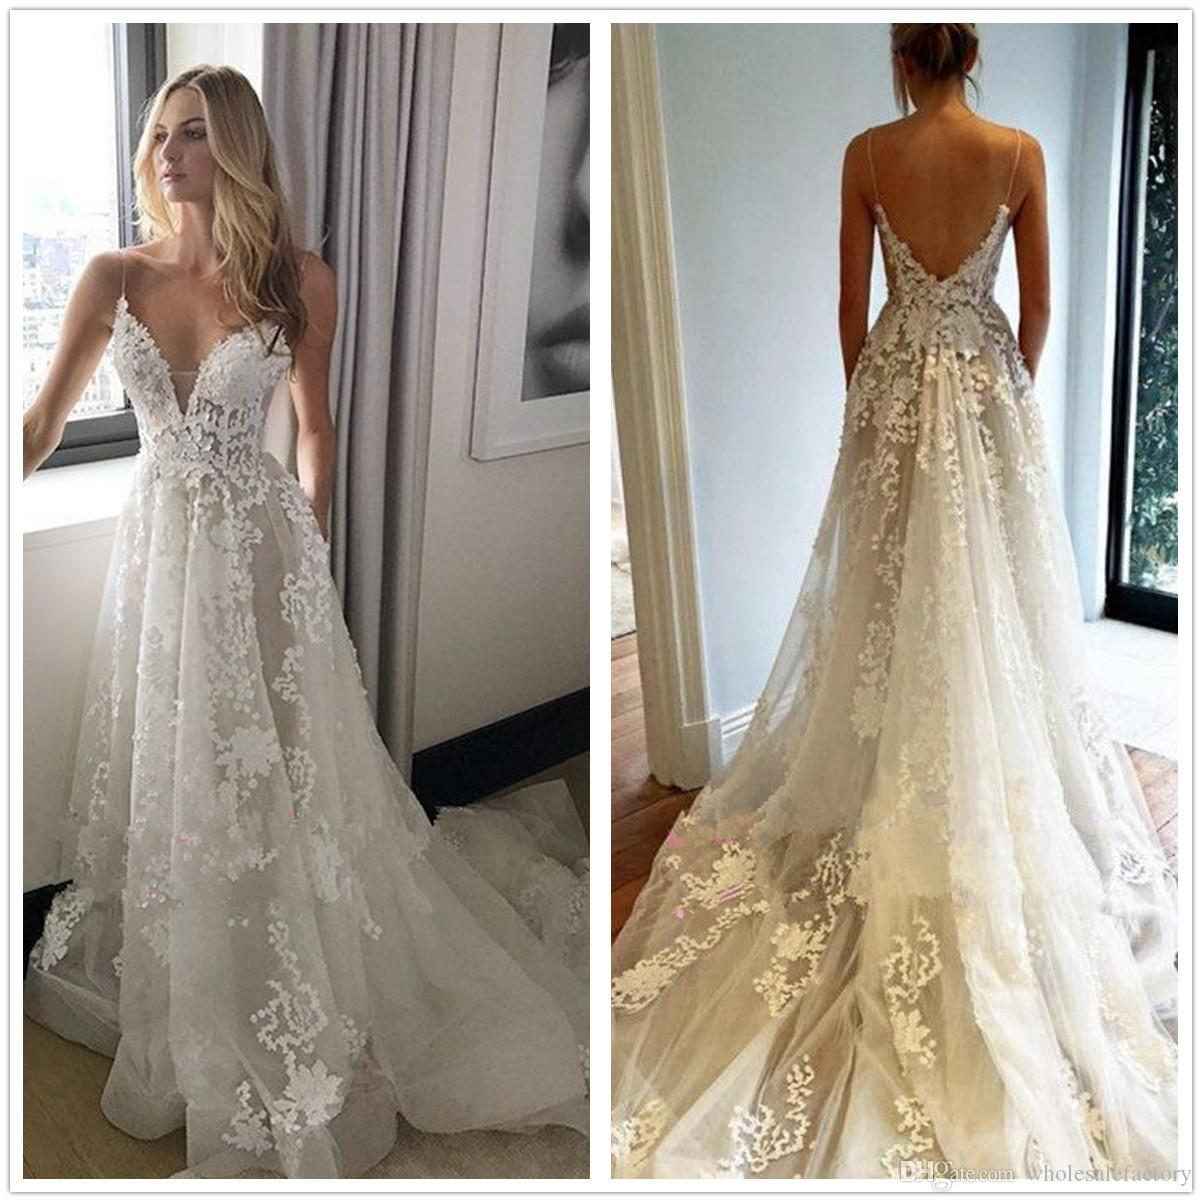 Discount 2018 Spaghetti Straps Lace A Line Wedding Dresses Sleeveless Tulle Applique Bohemian Summer Beach Bridal With Pockets Ball: Straps A Line Wedding Dress At Reisefeber.org